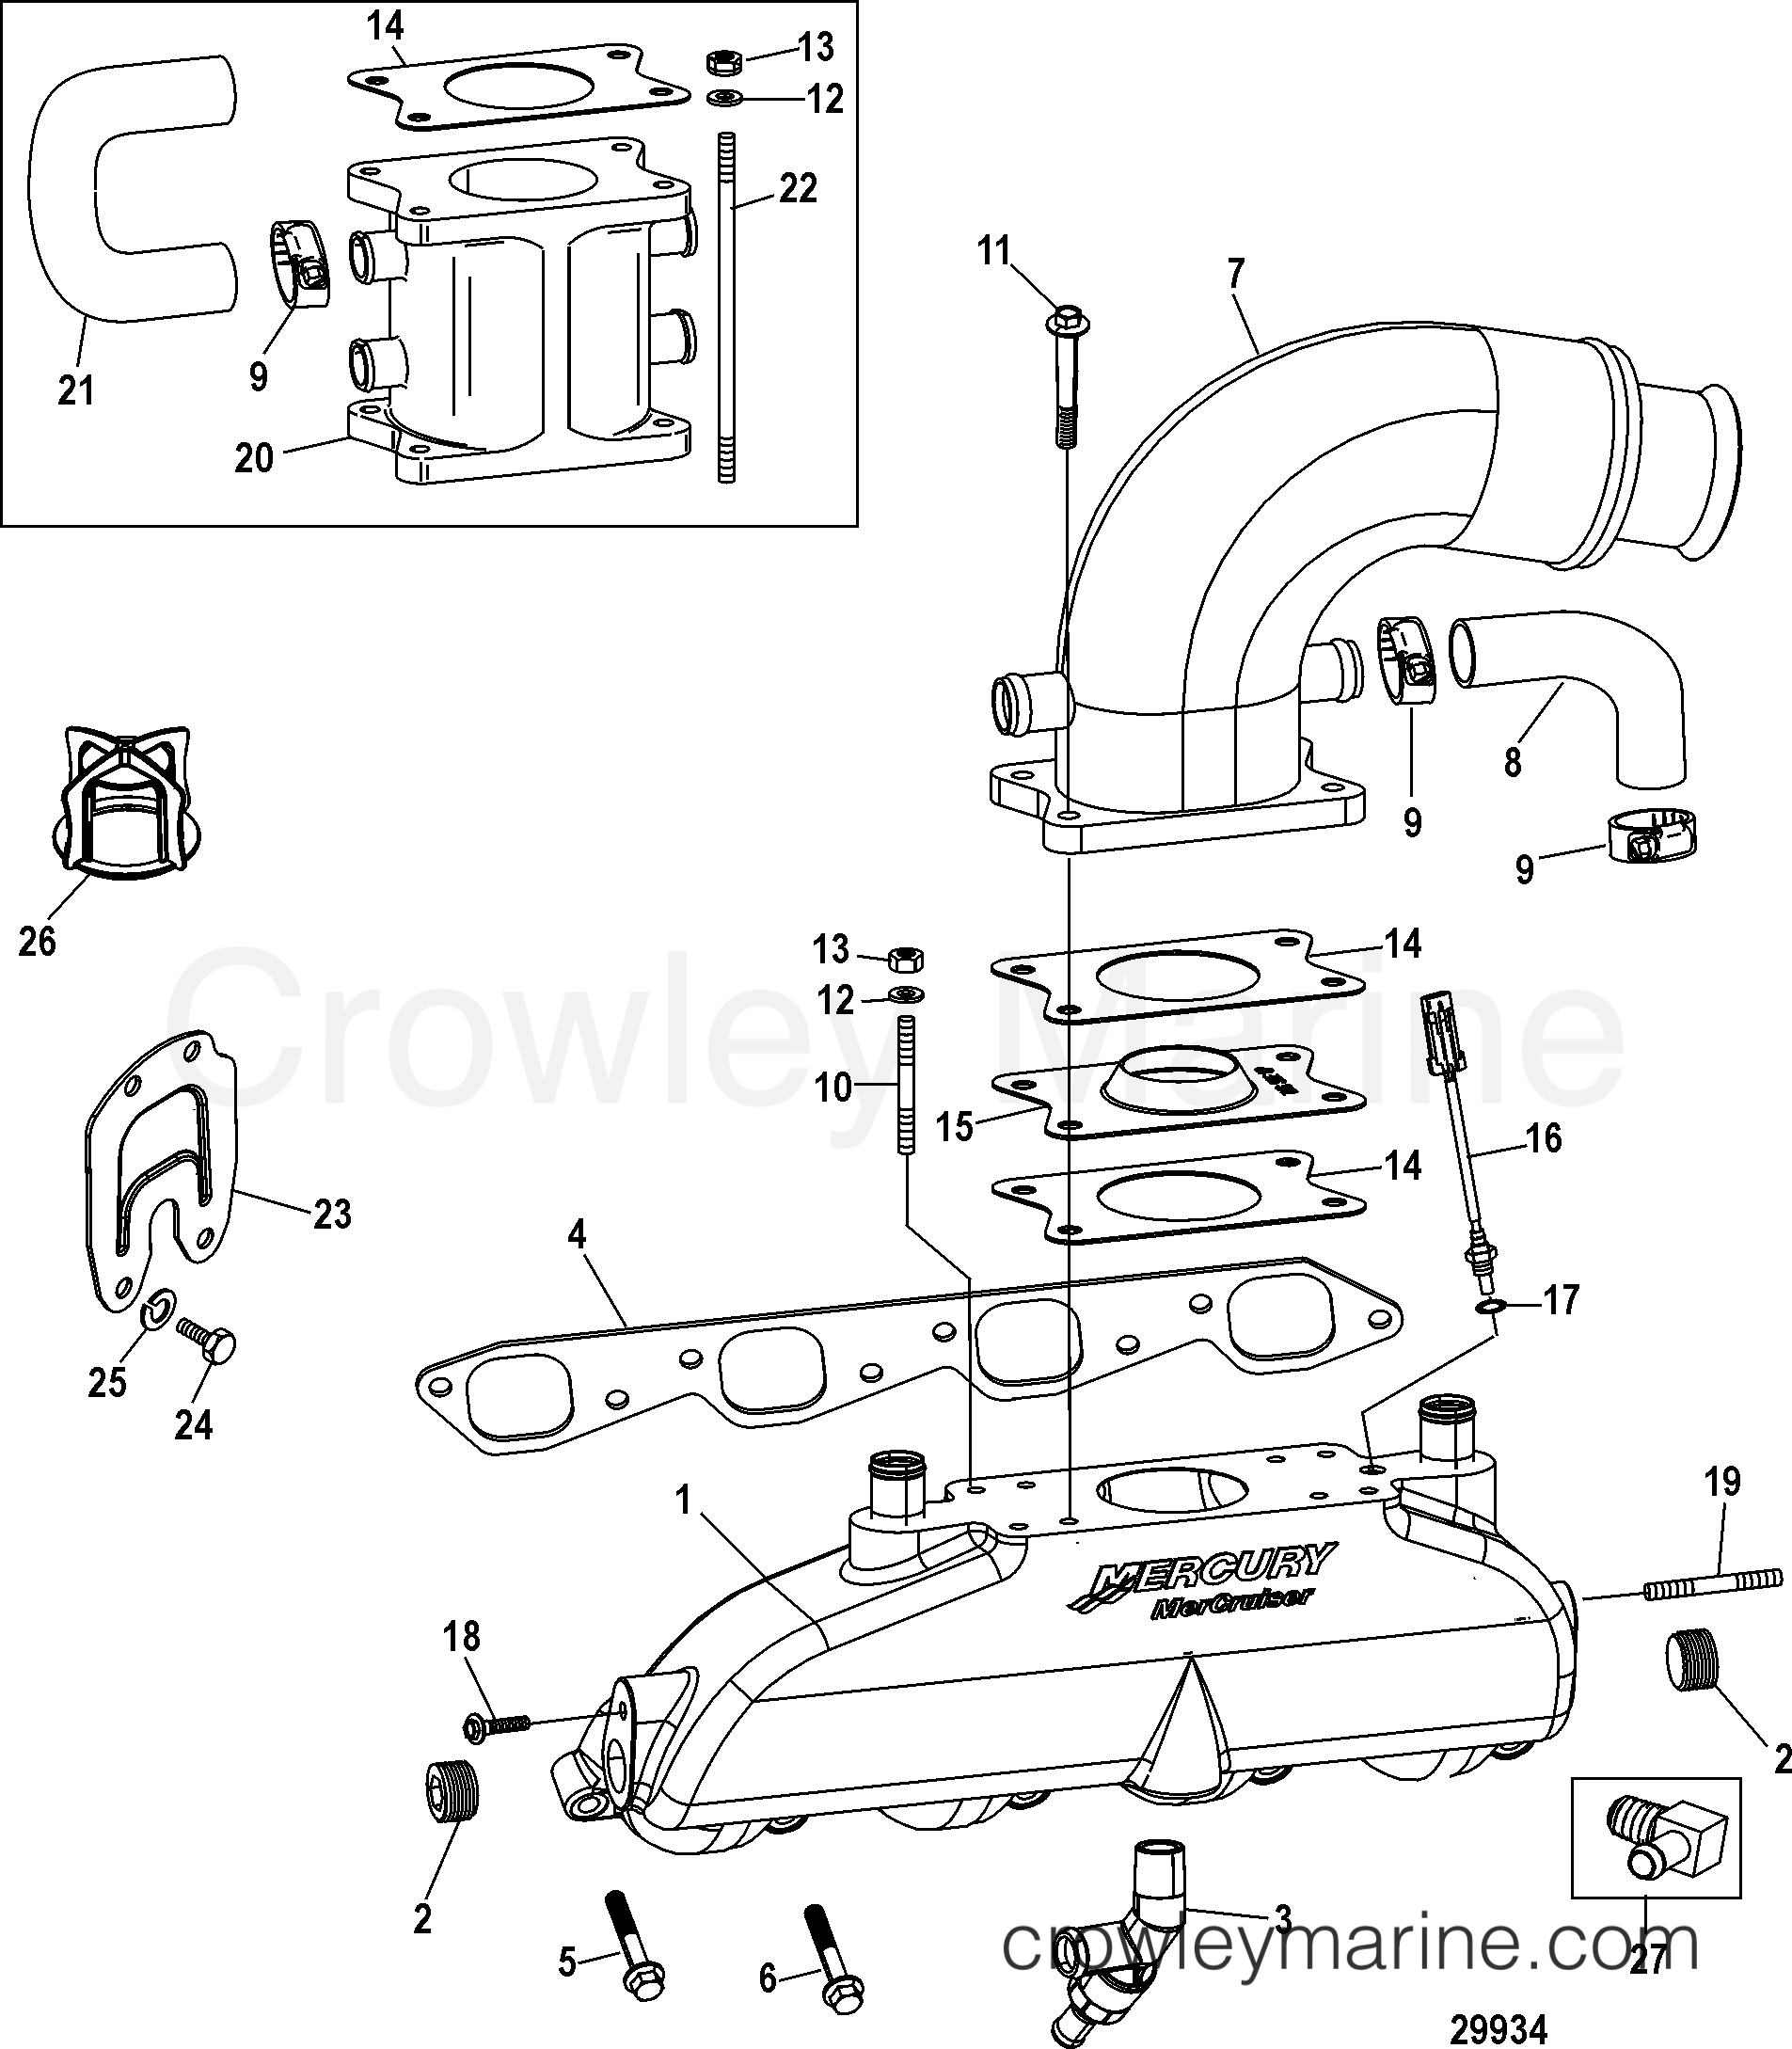 Exhaust Manifold Elbow And Riser